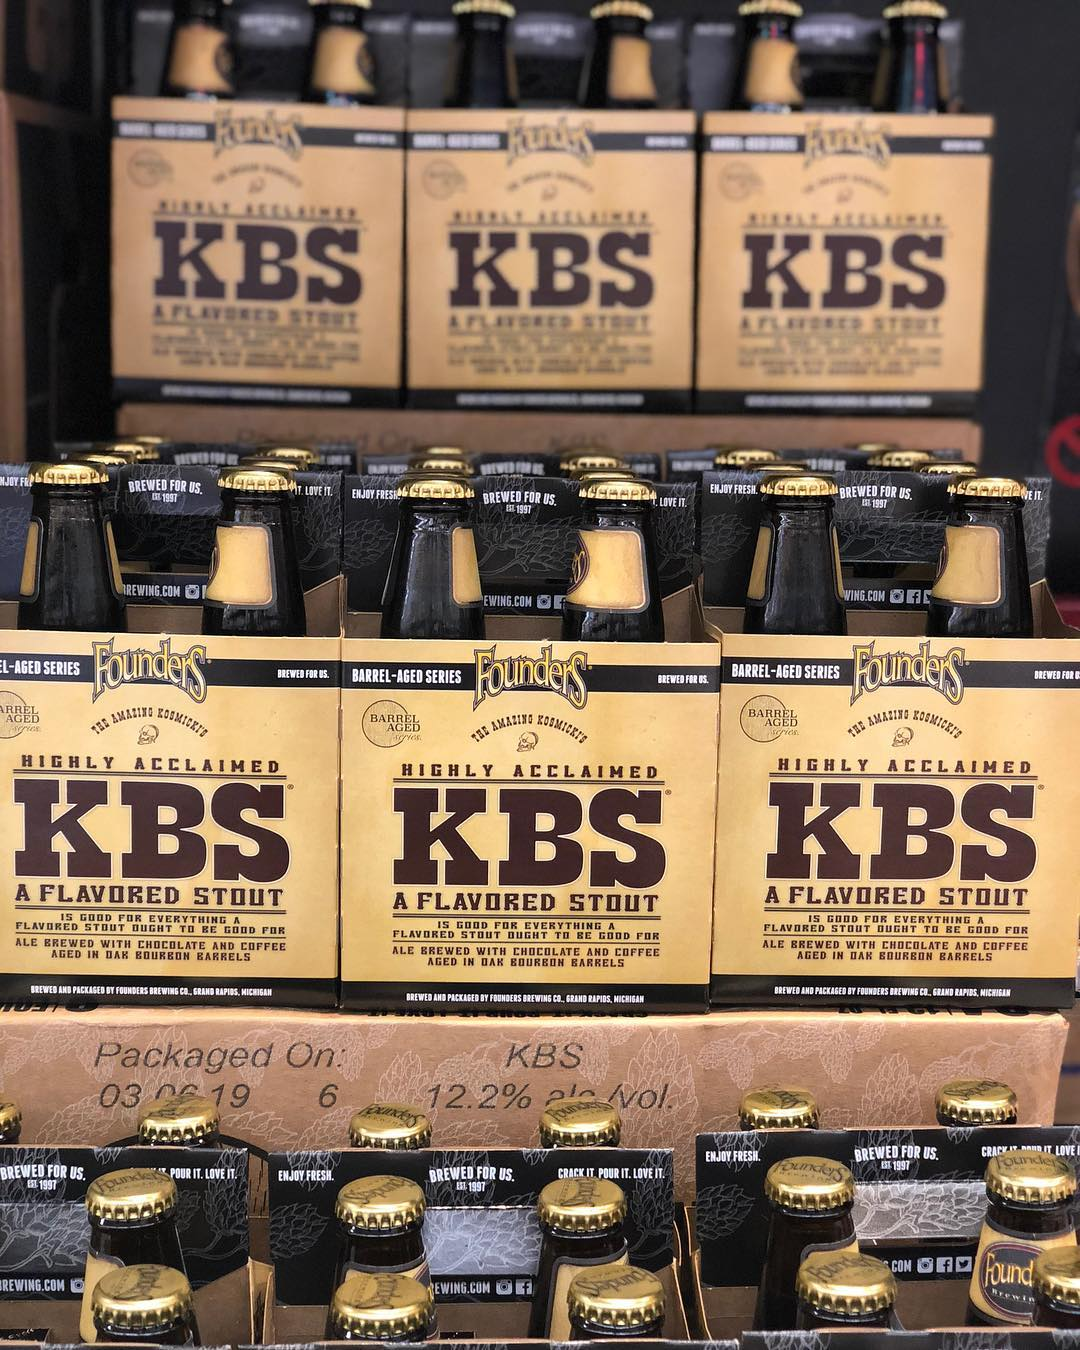 @foundersbrewing KBS is now in stock at our Perkins Rd location for the #lowprice of…